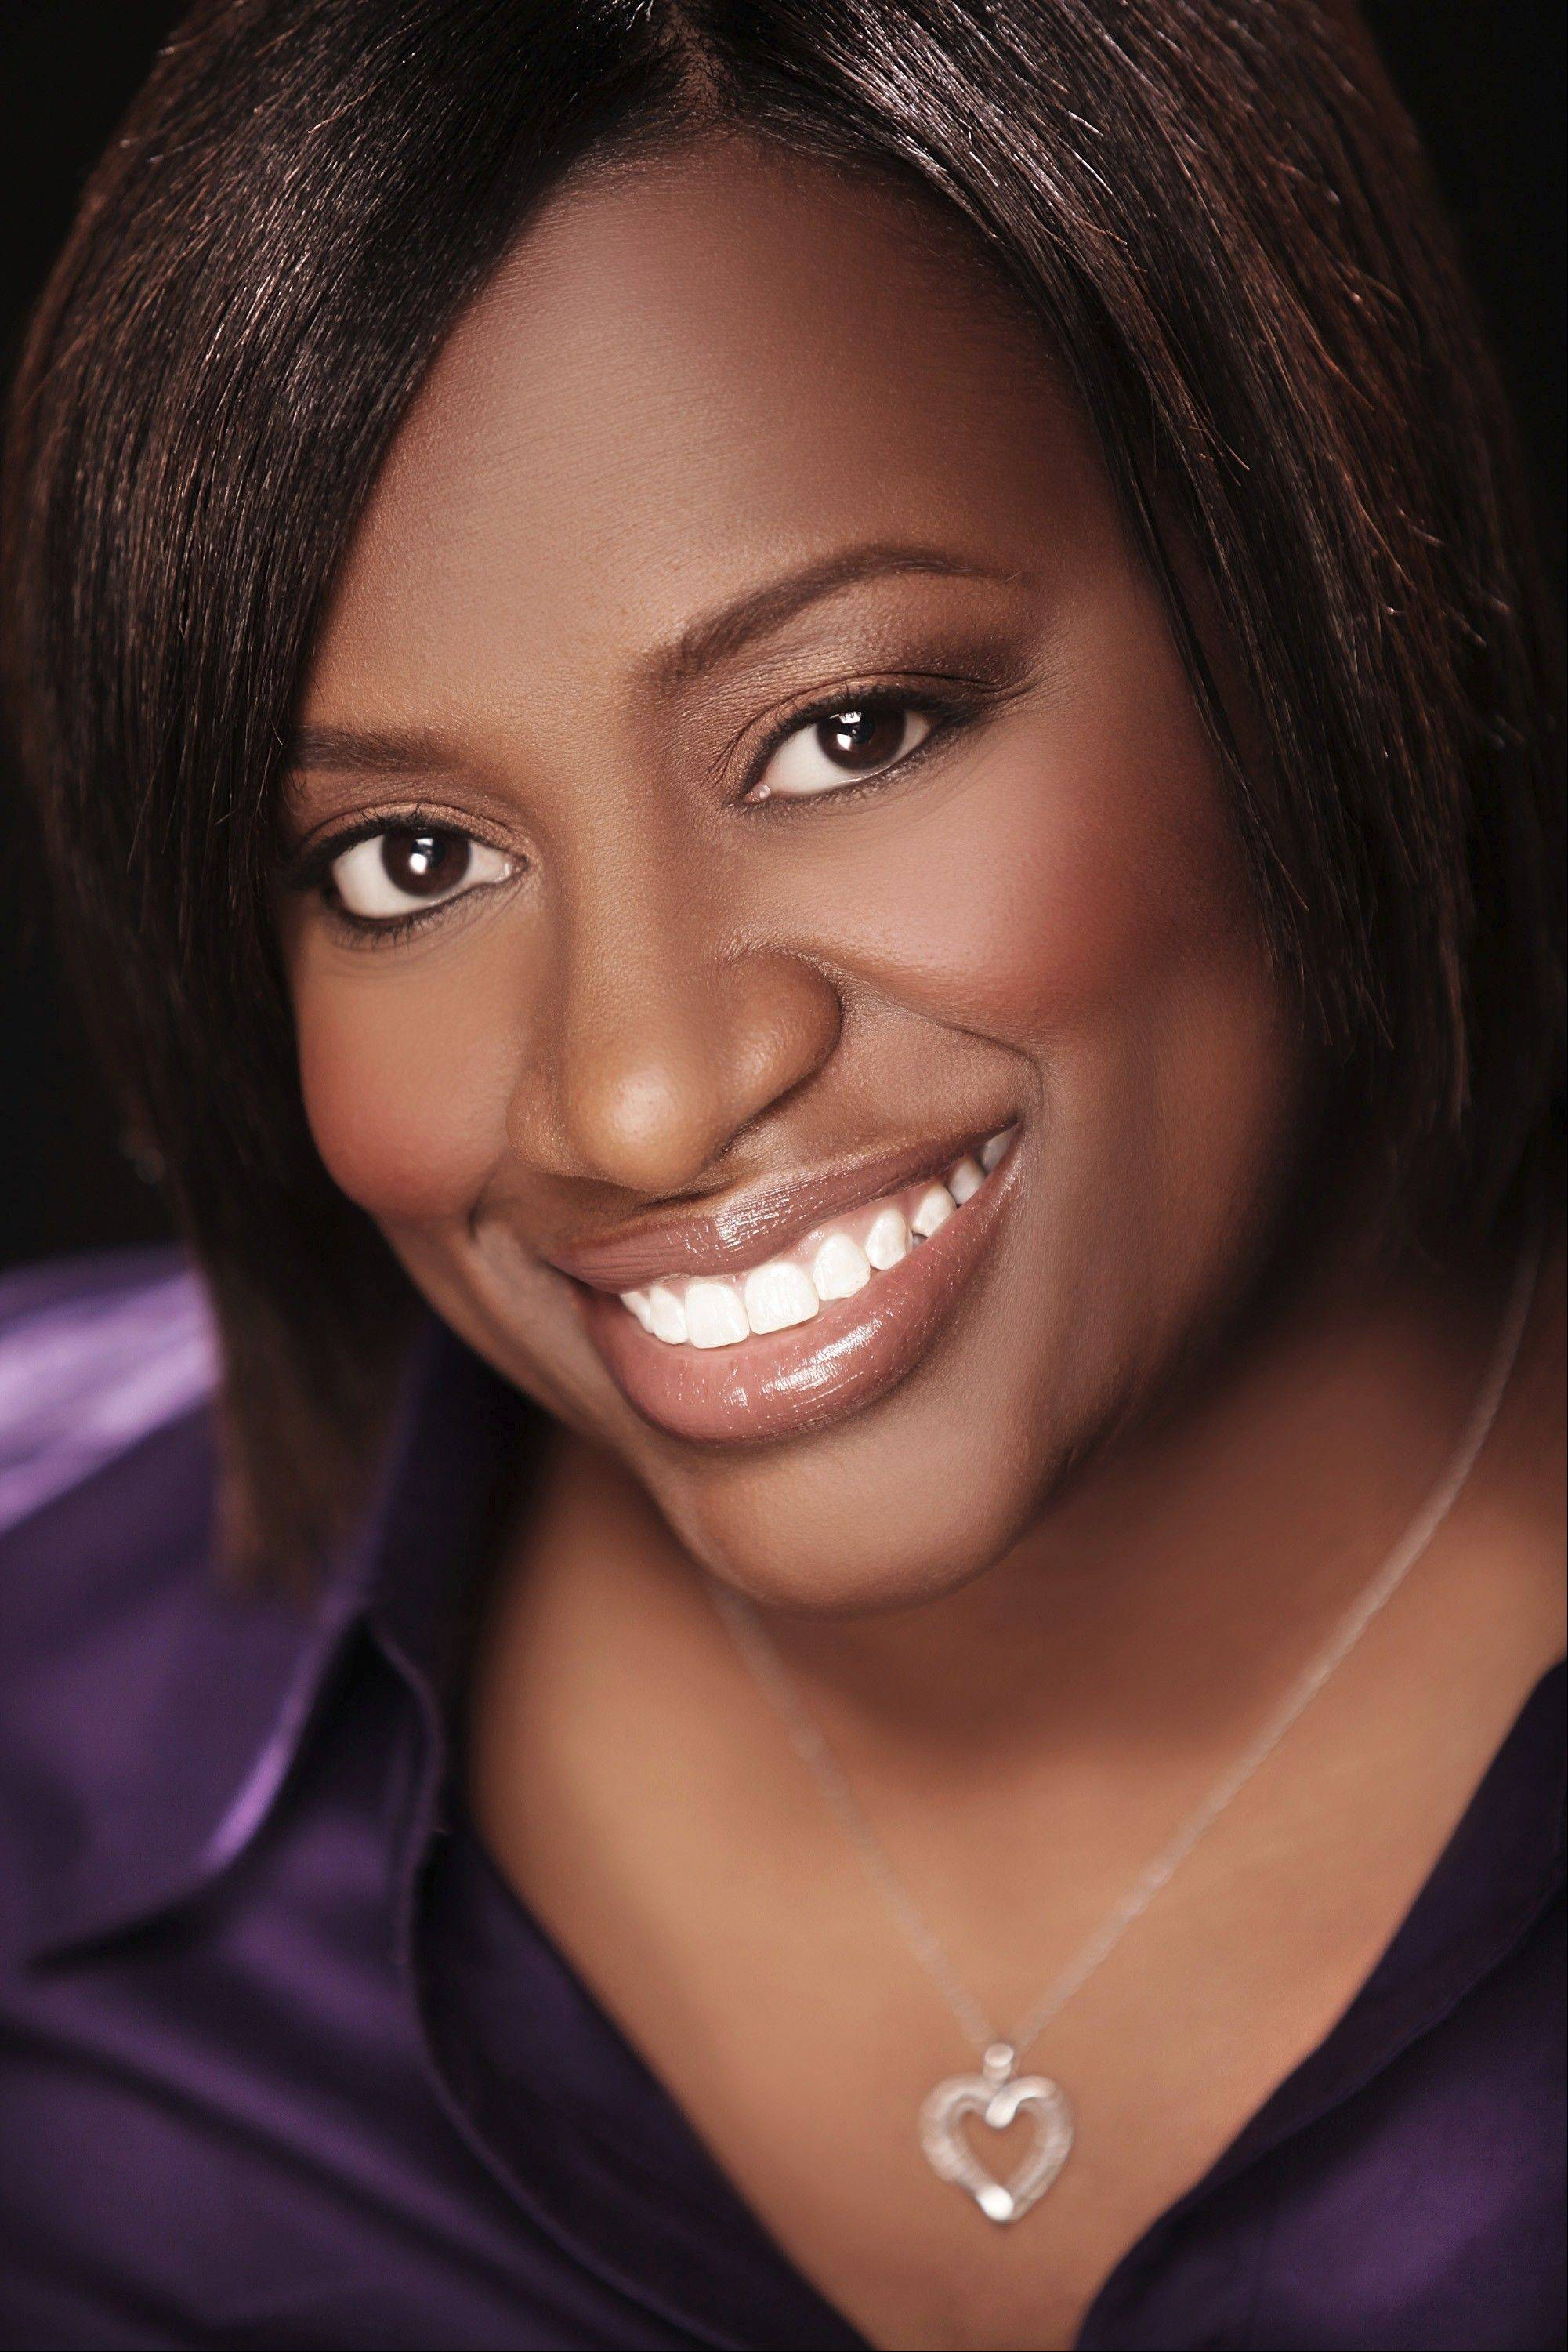 Comedian Erin Jackson brings the laughs to Zanies at Pheasant Run Resort in St. Charles.